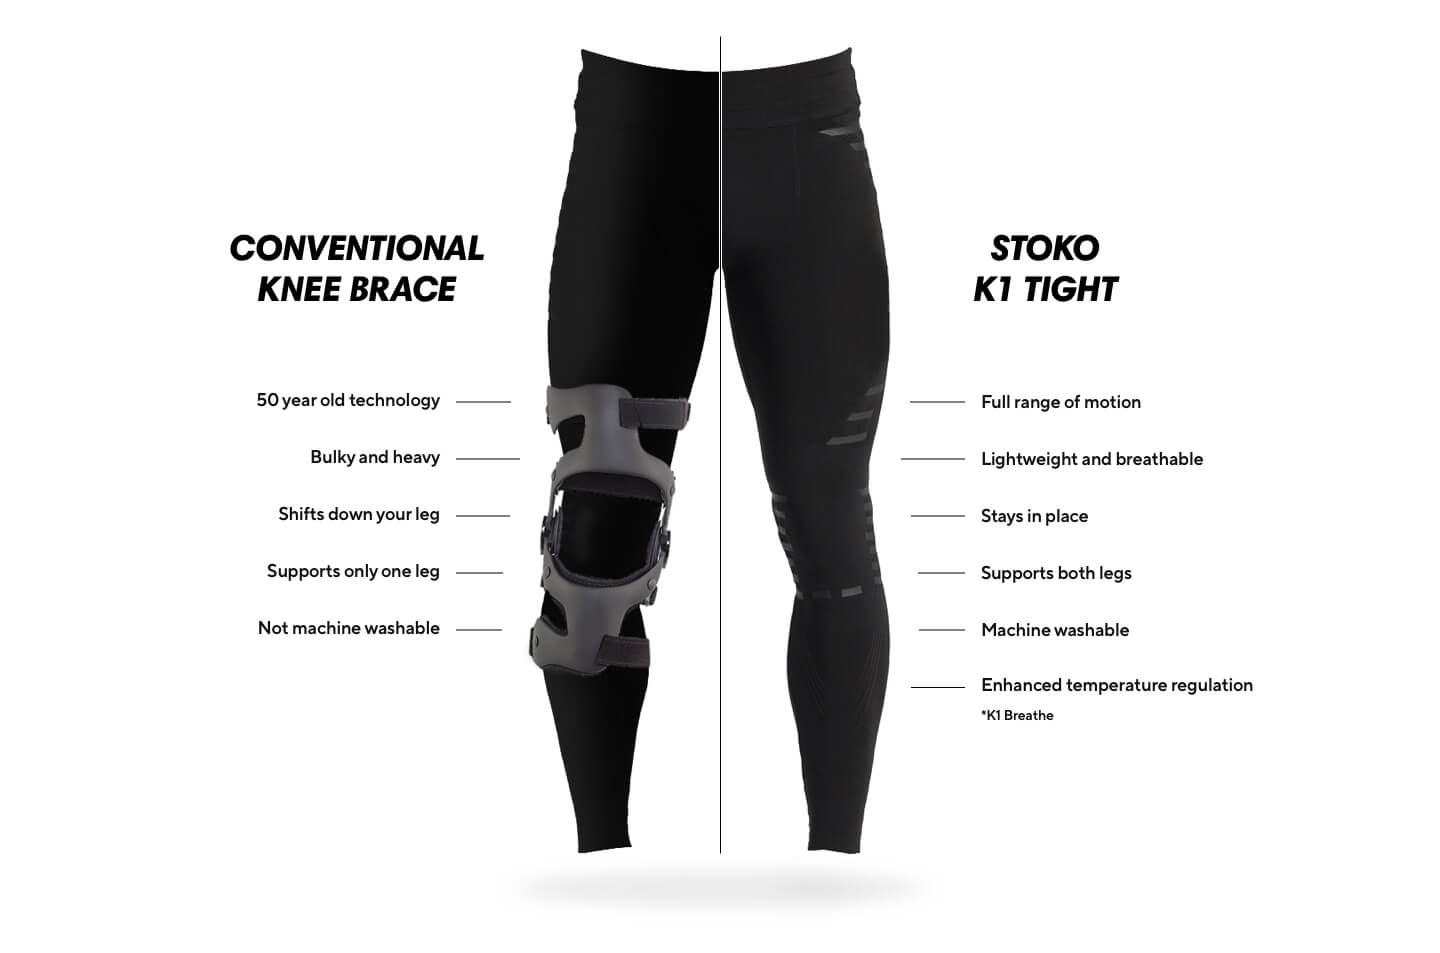 Compare Stoko to a traditional knee brace